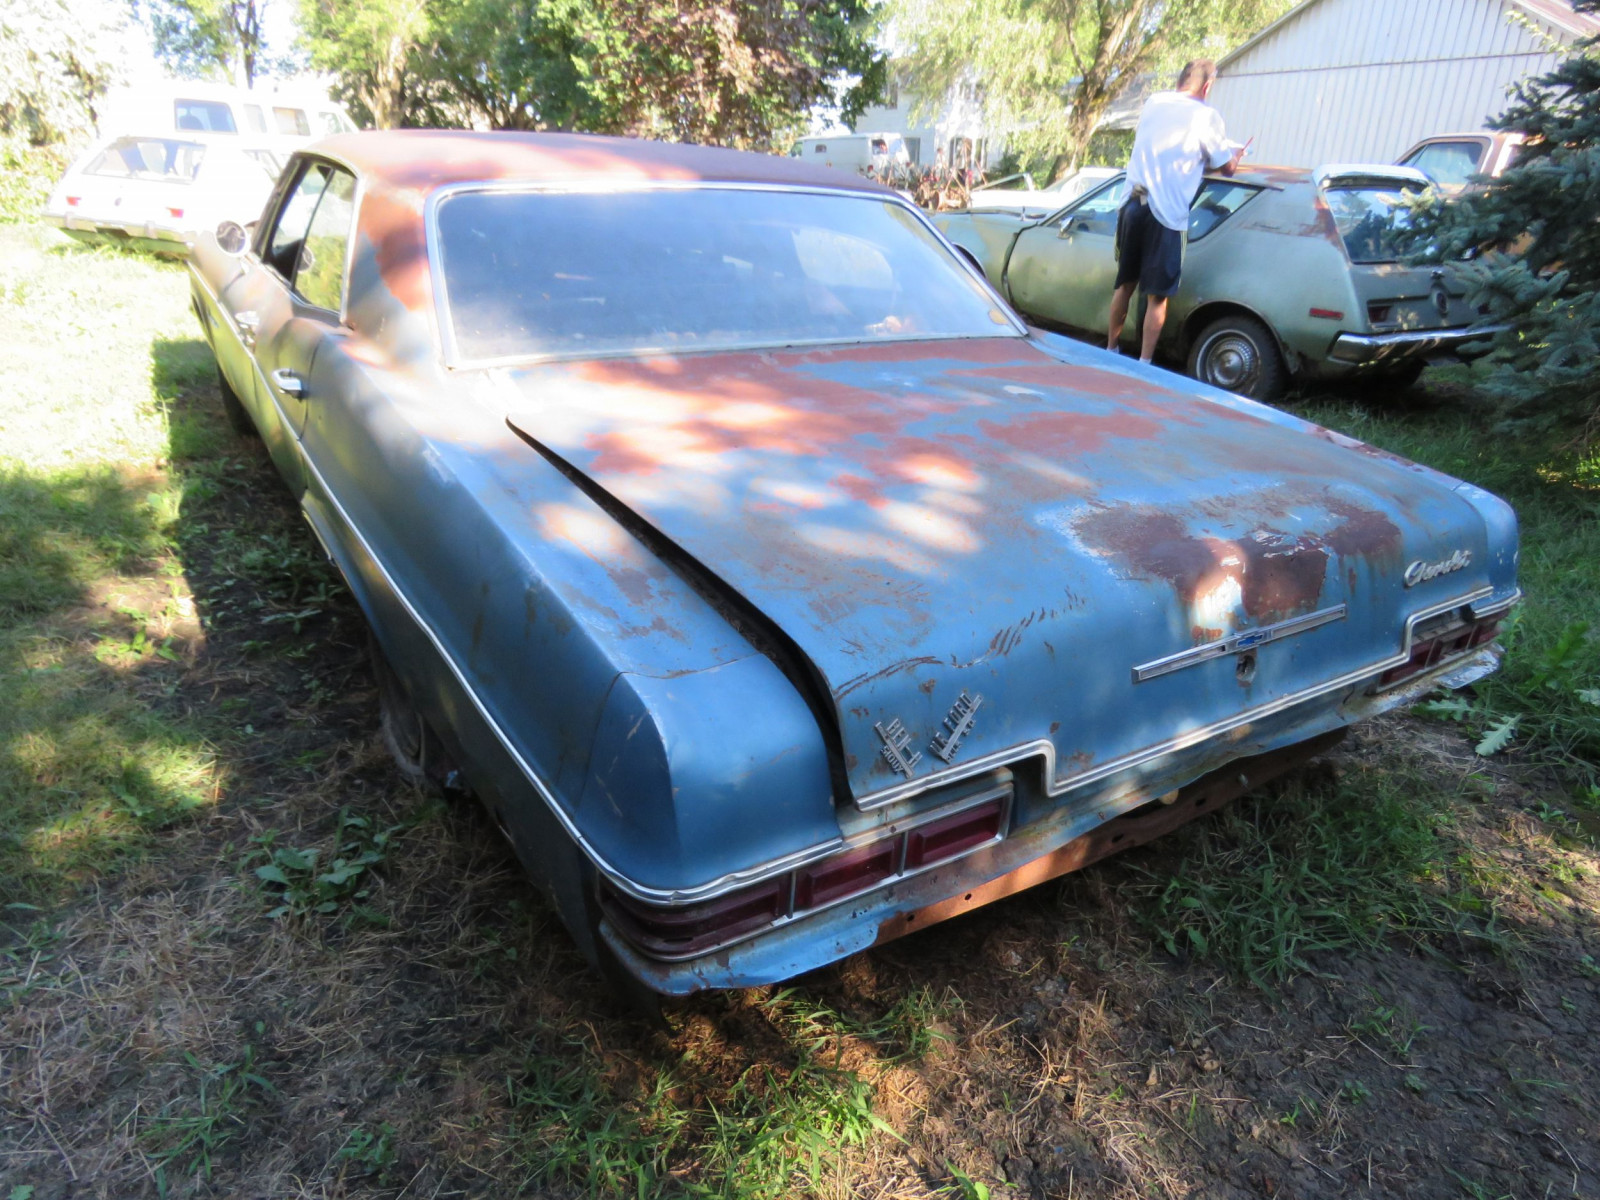 1966 Chevrolet Impala 4dr HT for Project or Parts - Image 3